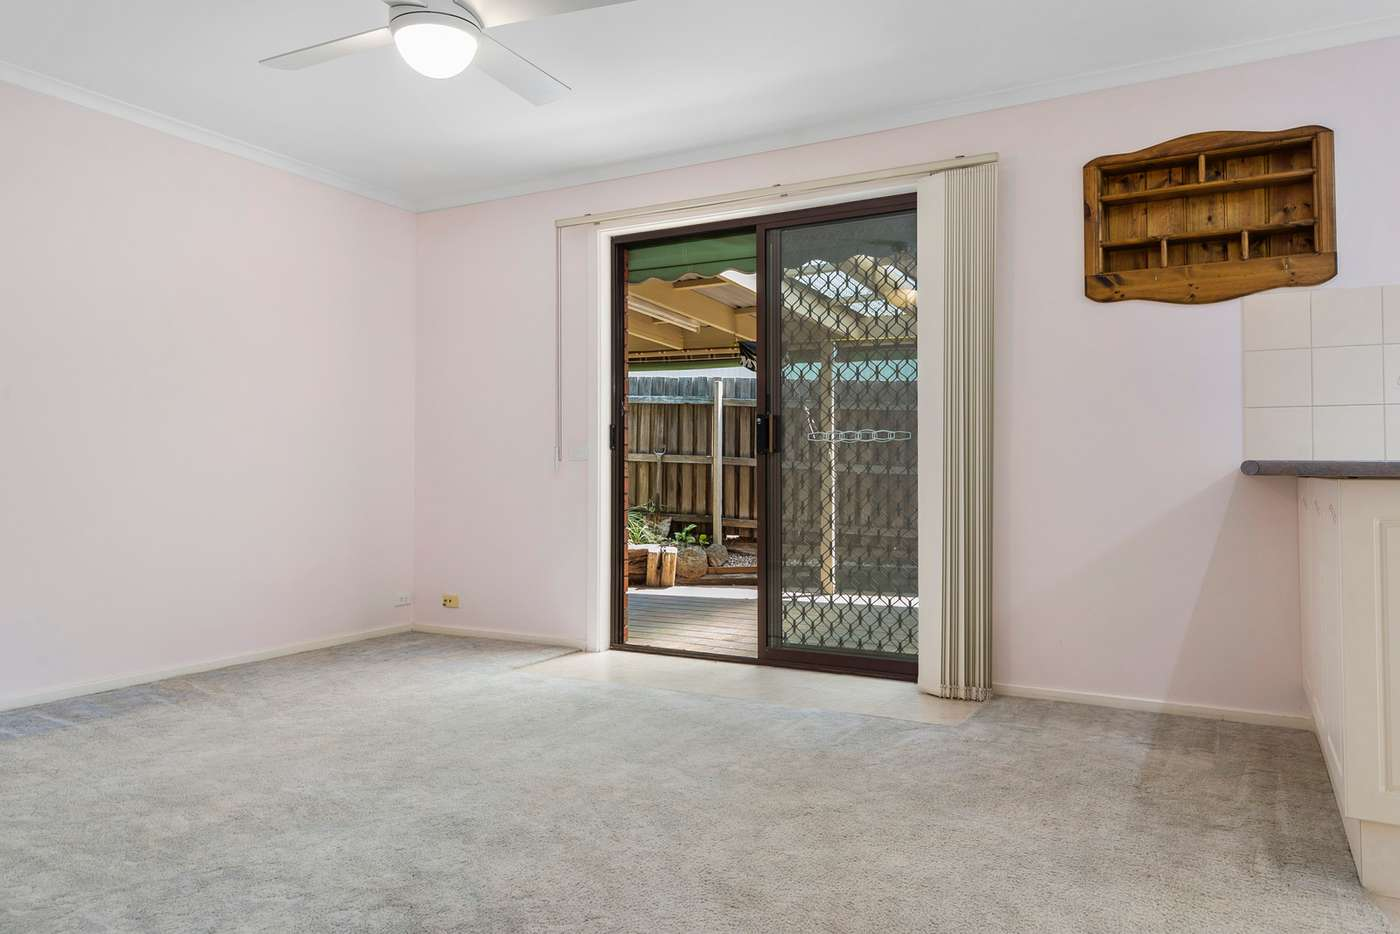 Sixth view of Homely house listing, 19 O'Hagan Place, Bacchus Marsh VIC 3340